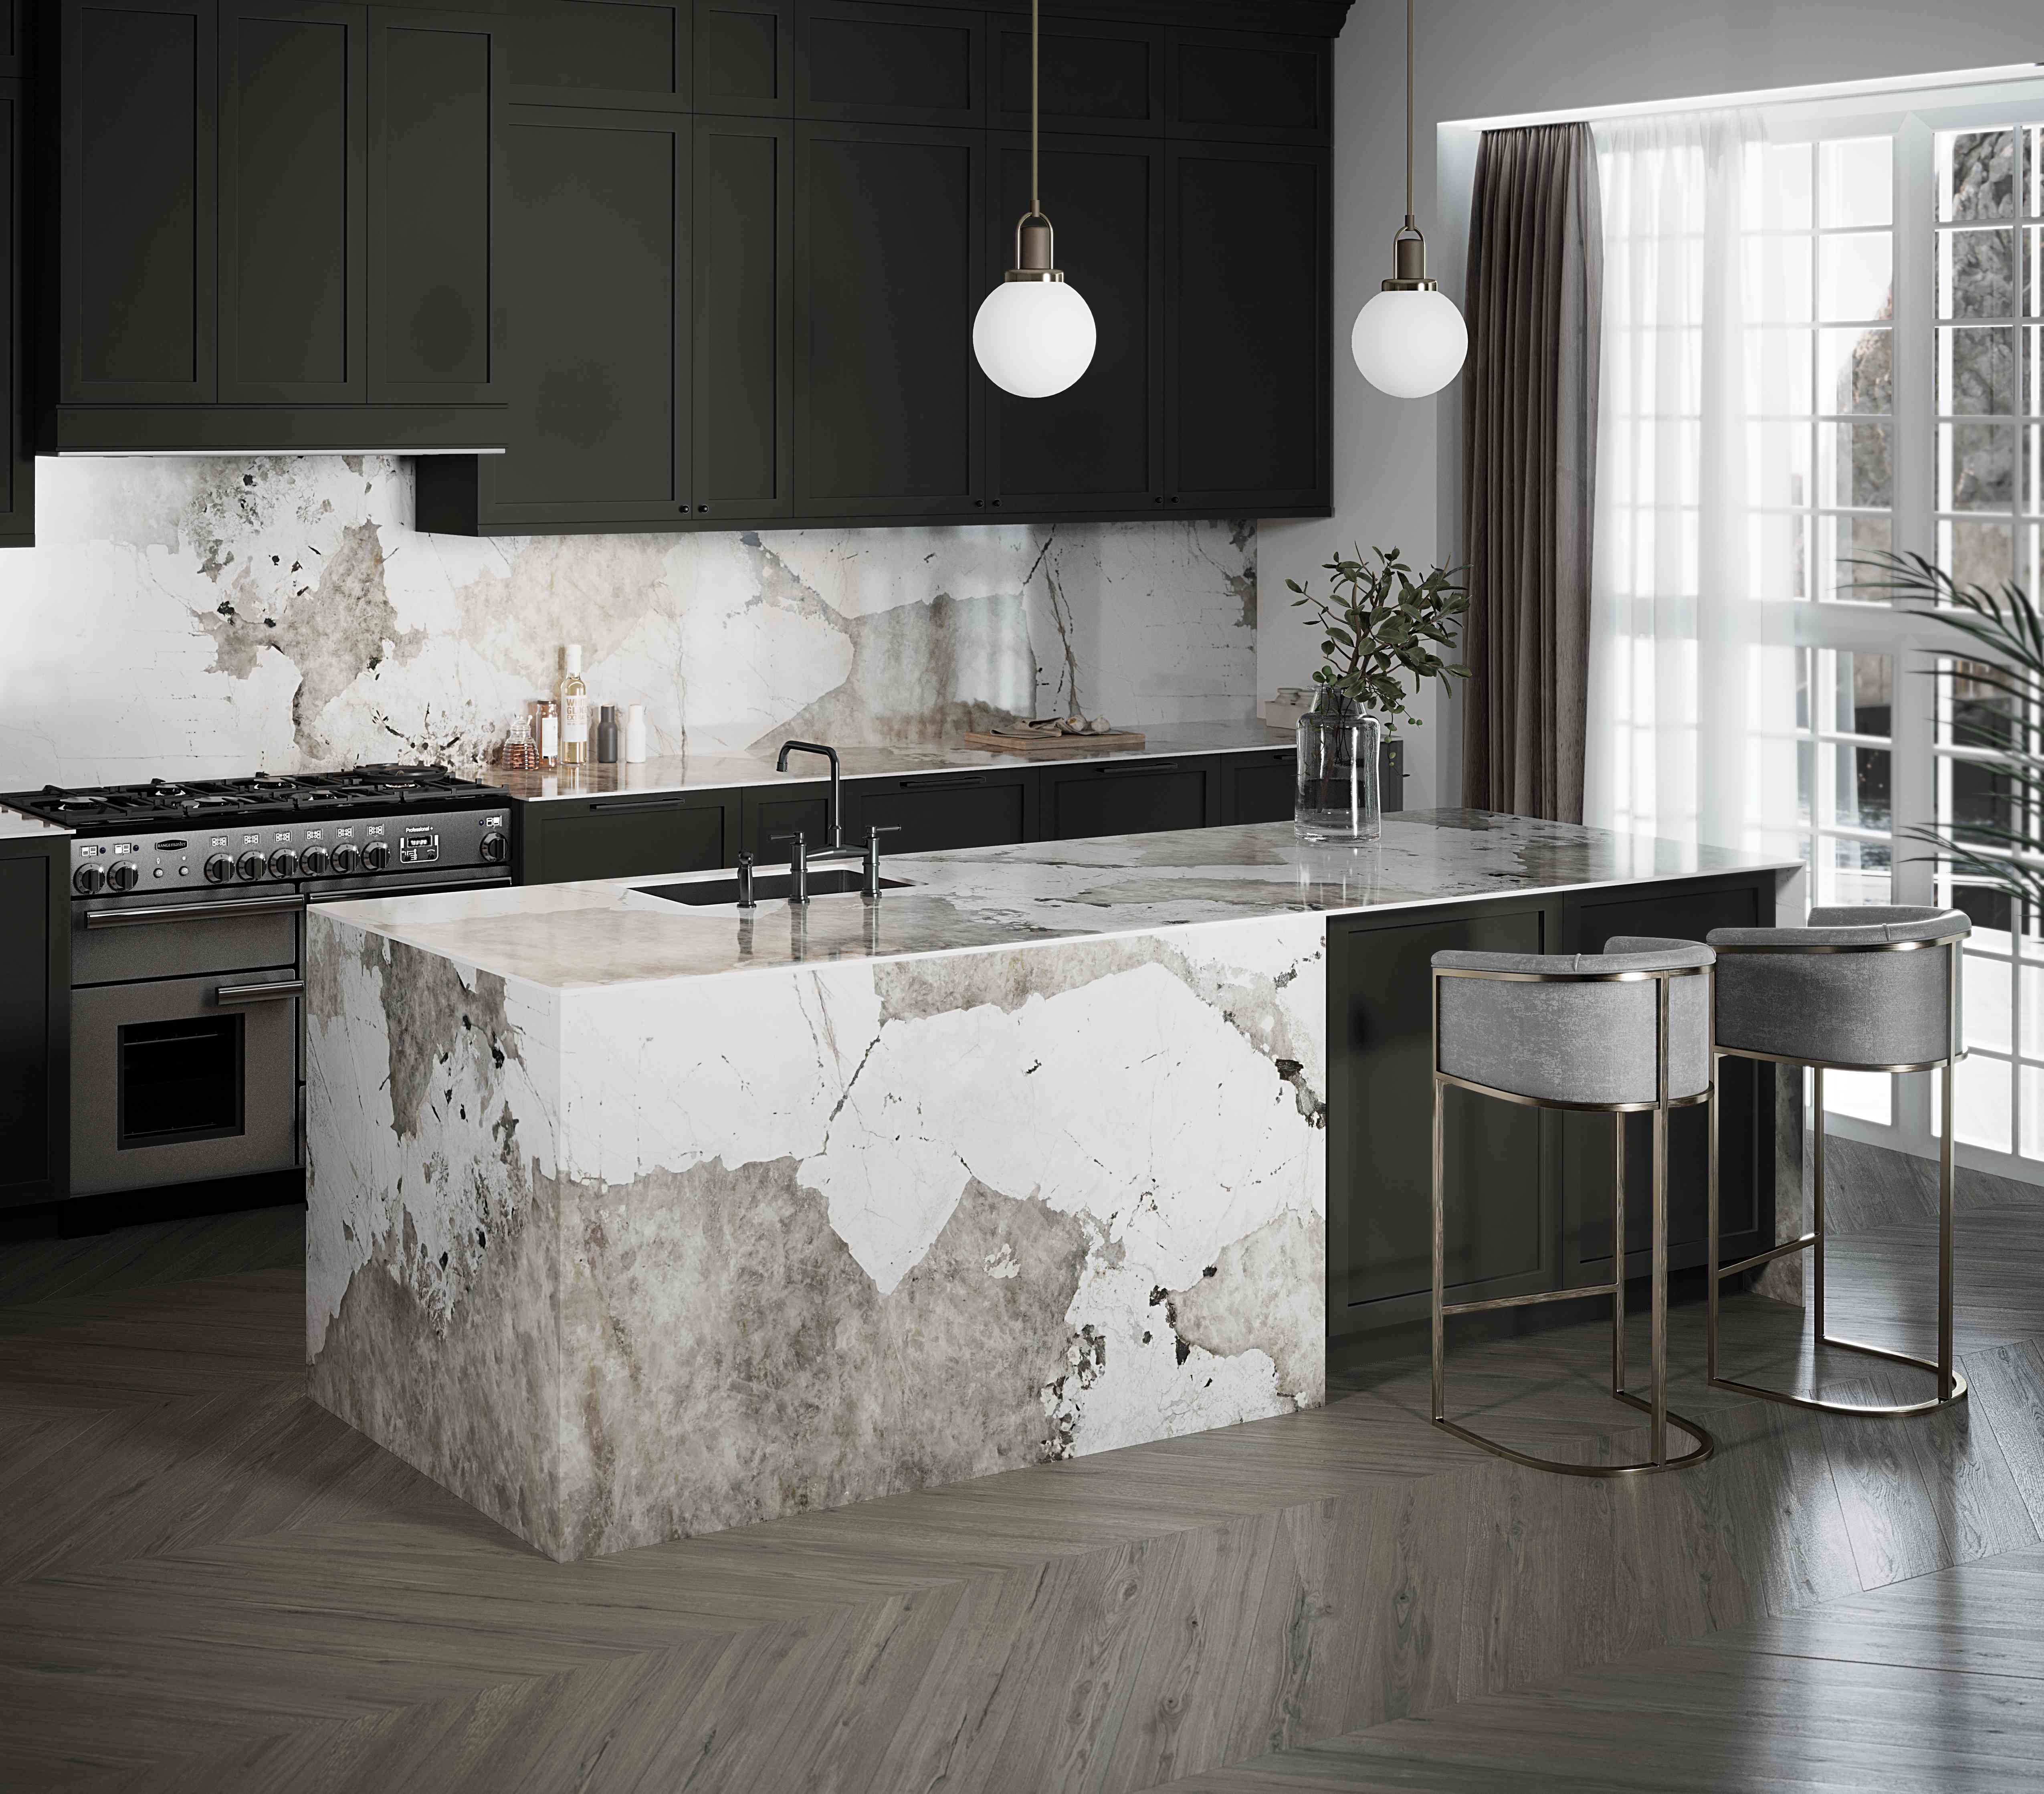 Black cabinets and white marble countertop.